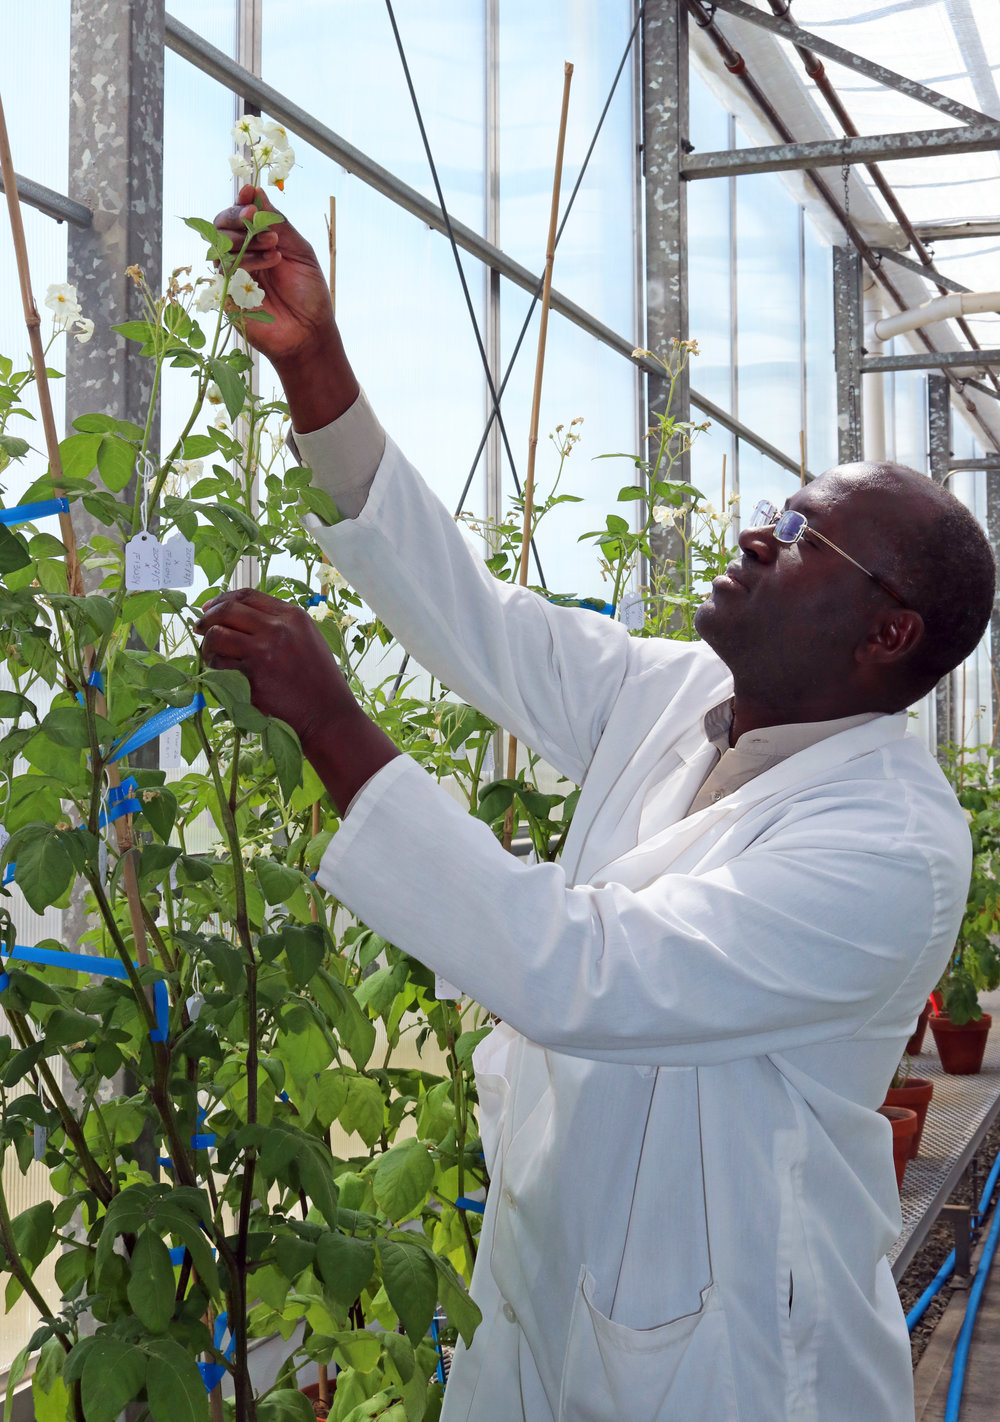 Dr. Benoit Bizimungu, Head Potato Researcher at the potato Research Centre, tends to some potatoes.